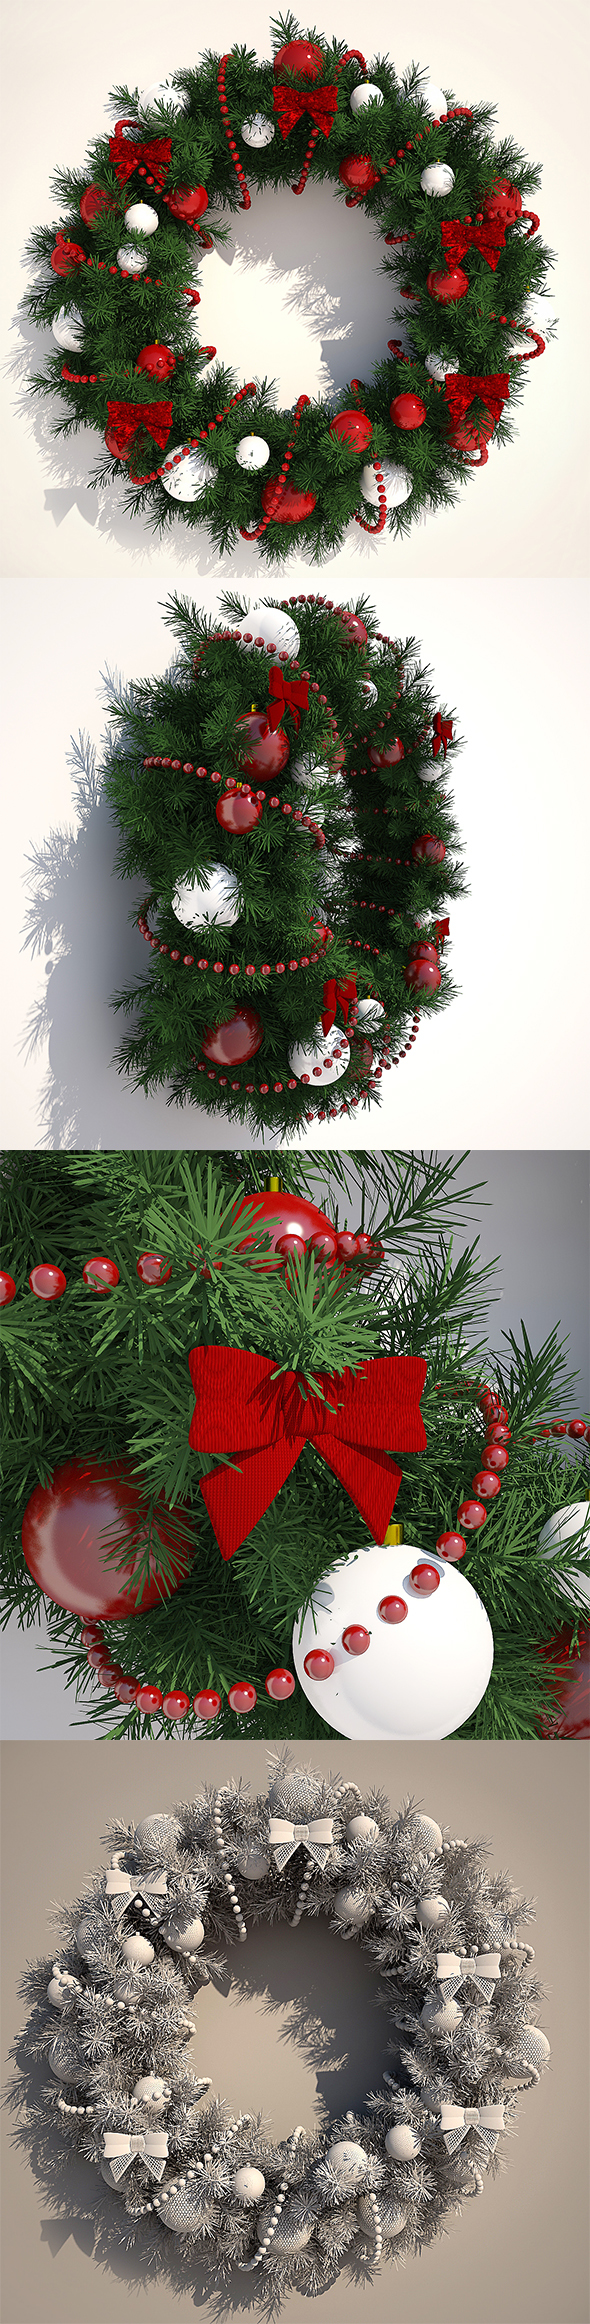 Christmas Wreath - 3DOcean Item for Sale